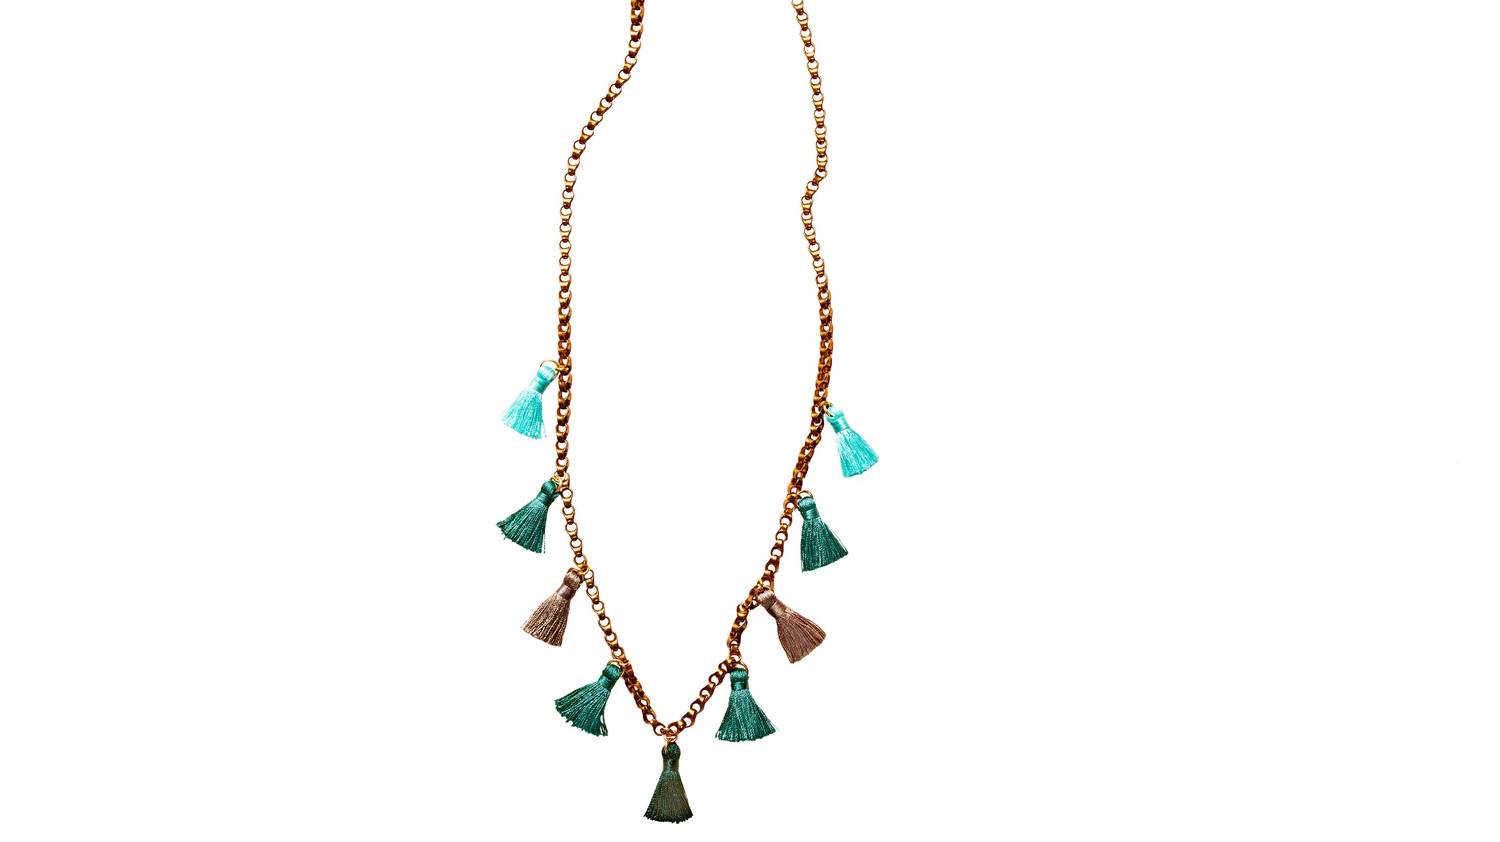 Mini-Tassel Chain Necklace